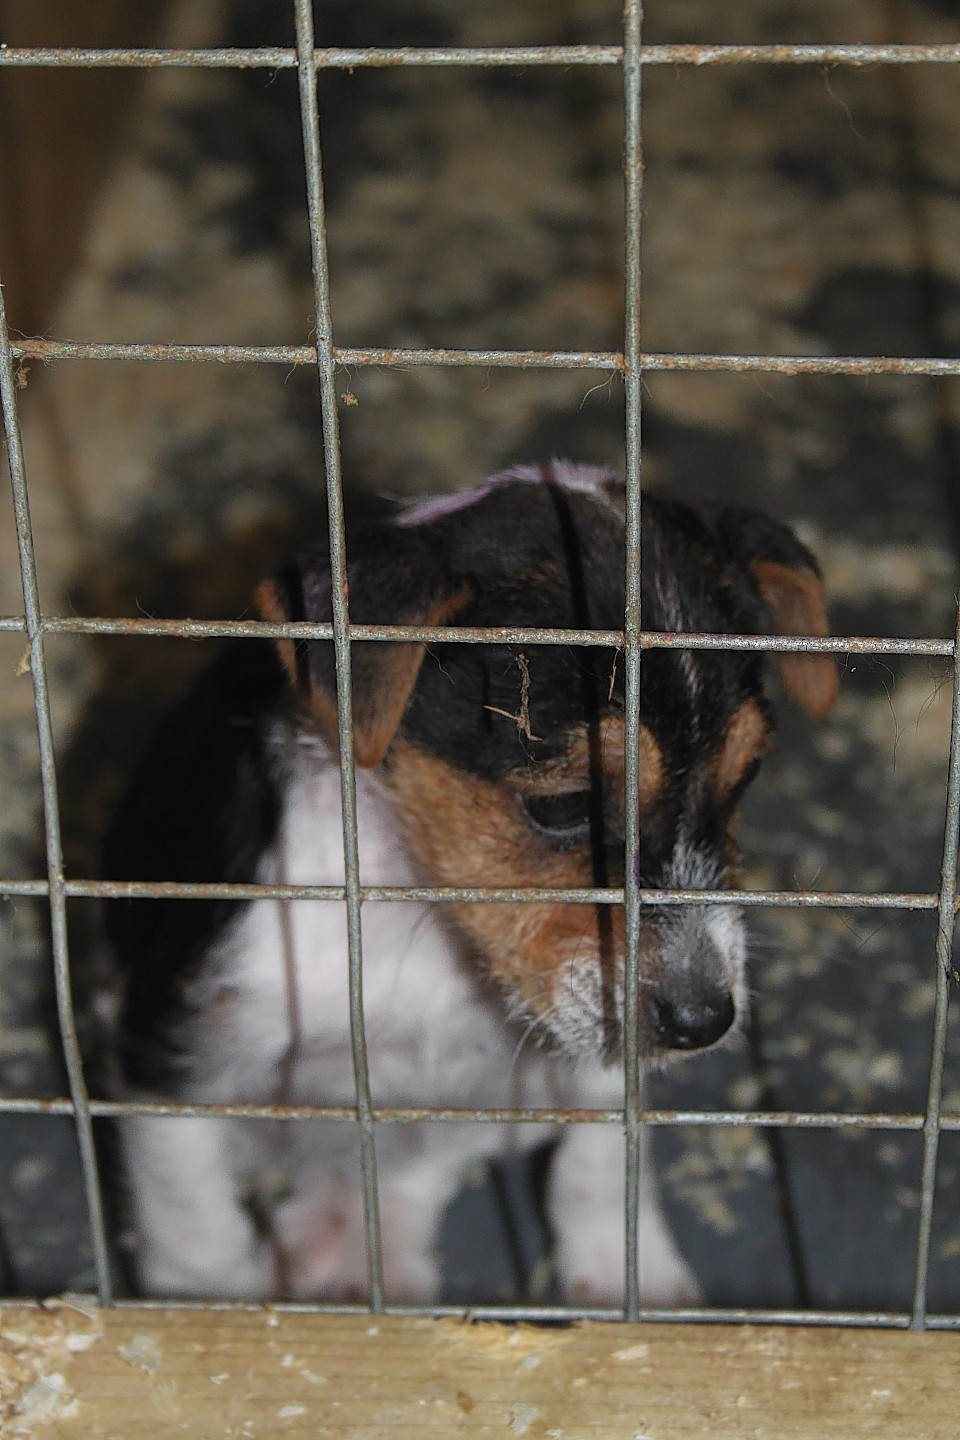 Animals bred in puppy farms are often kept in terrible conditions.